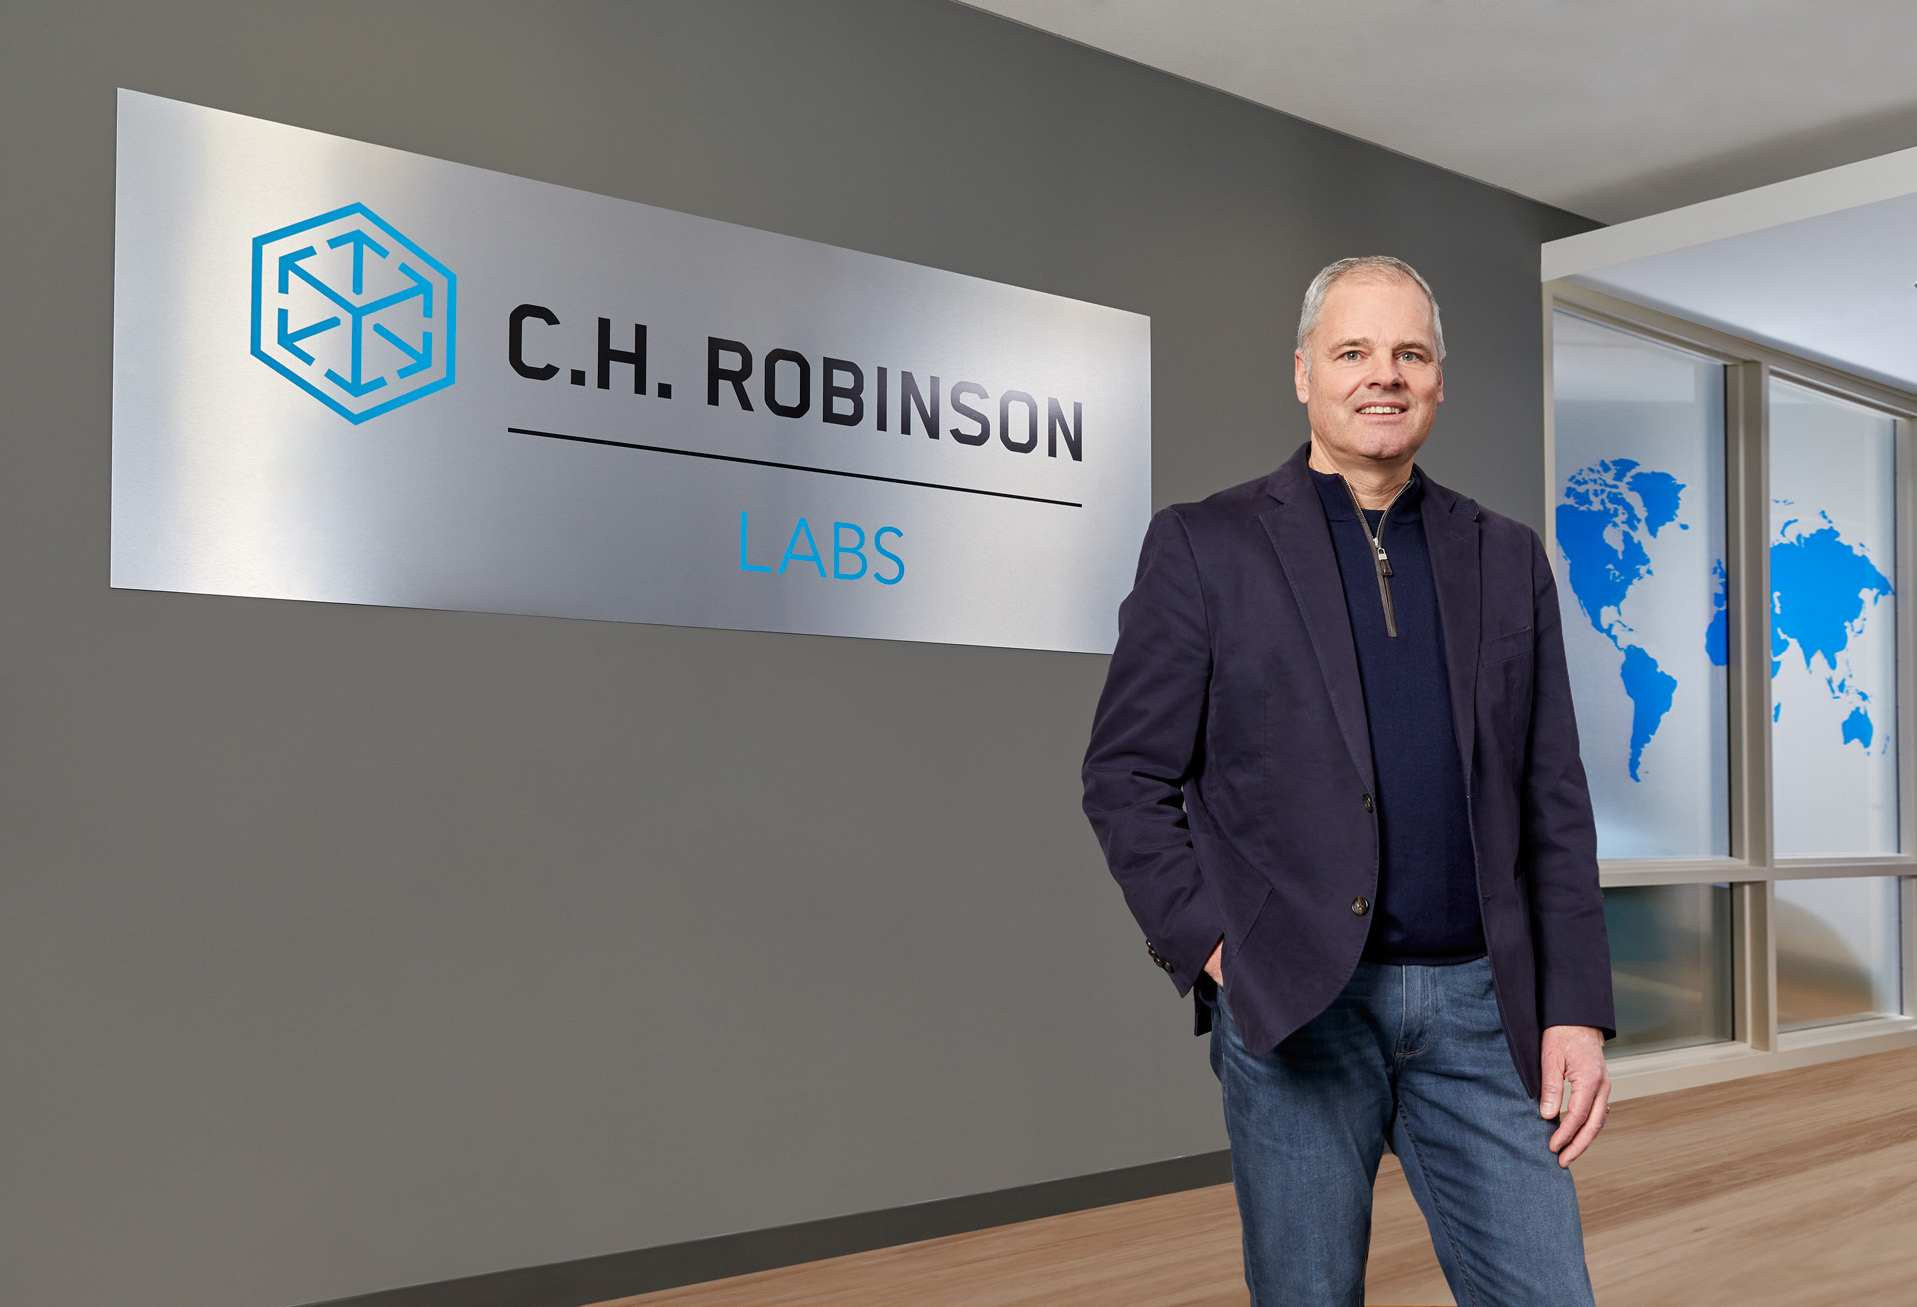 Image of Robinson Labs with Tim Gagnon